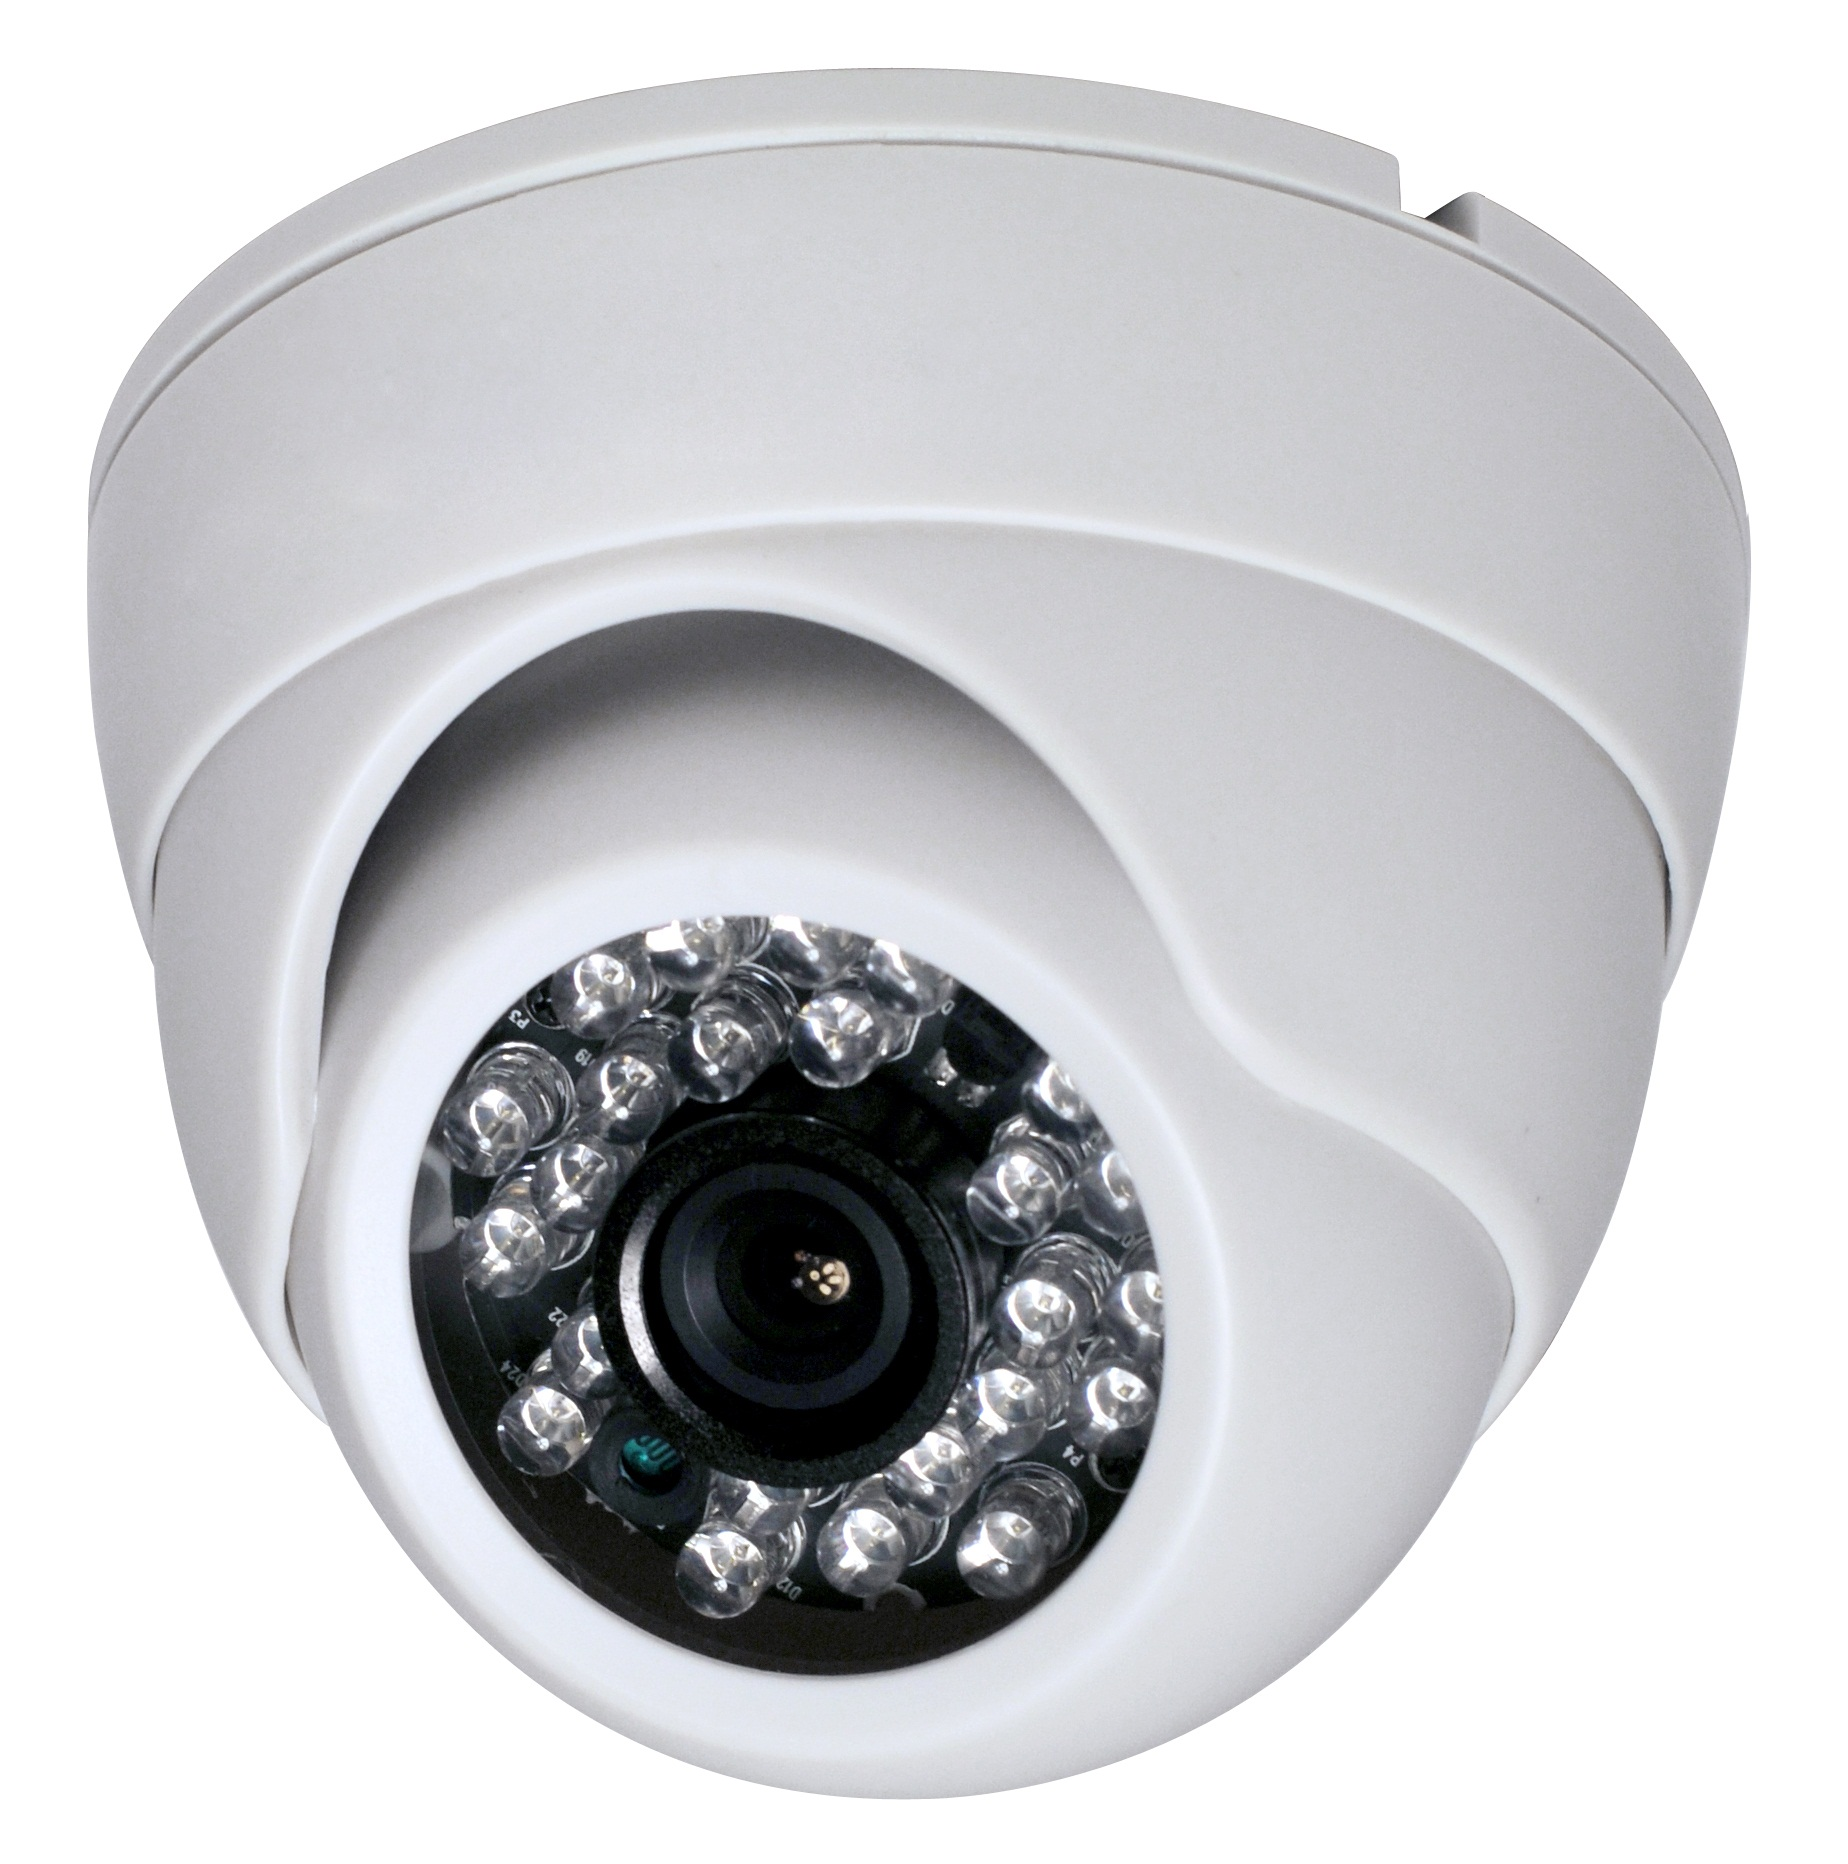 600TVL Fixed Lens 24IR Metal Dome camera